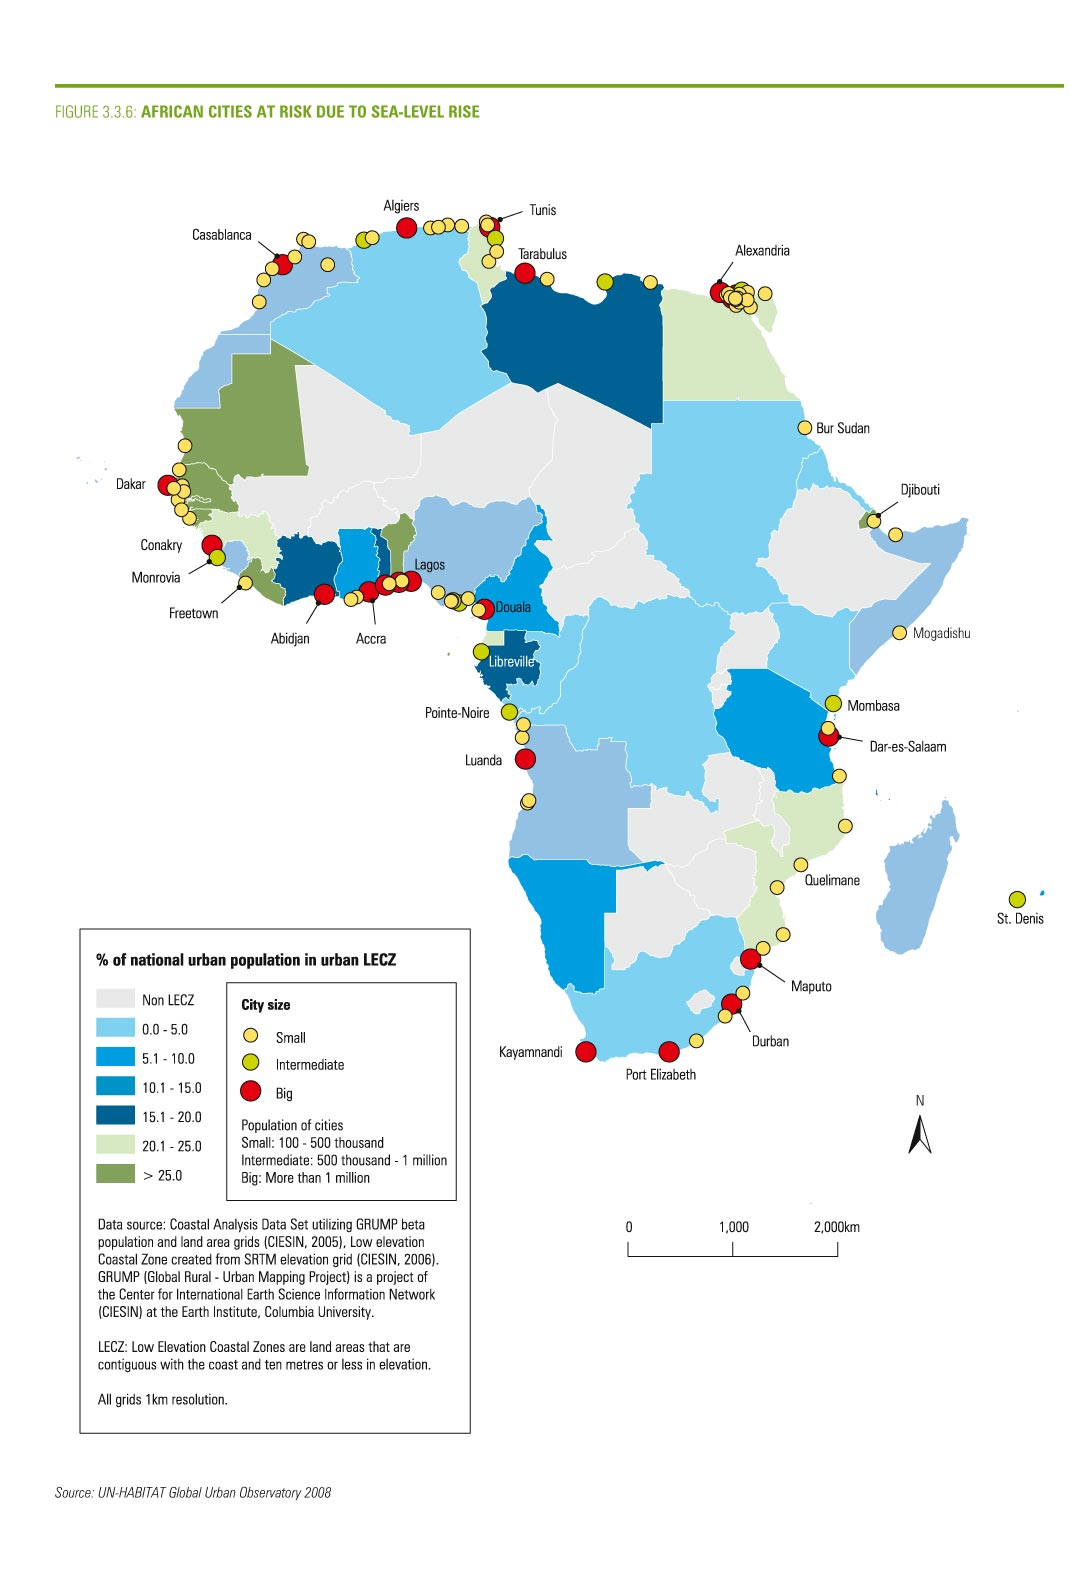 african-cities-at-risk-due-to-sea-level-rise